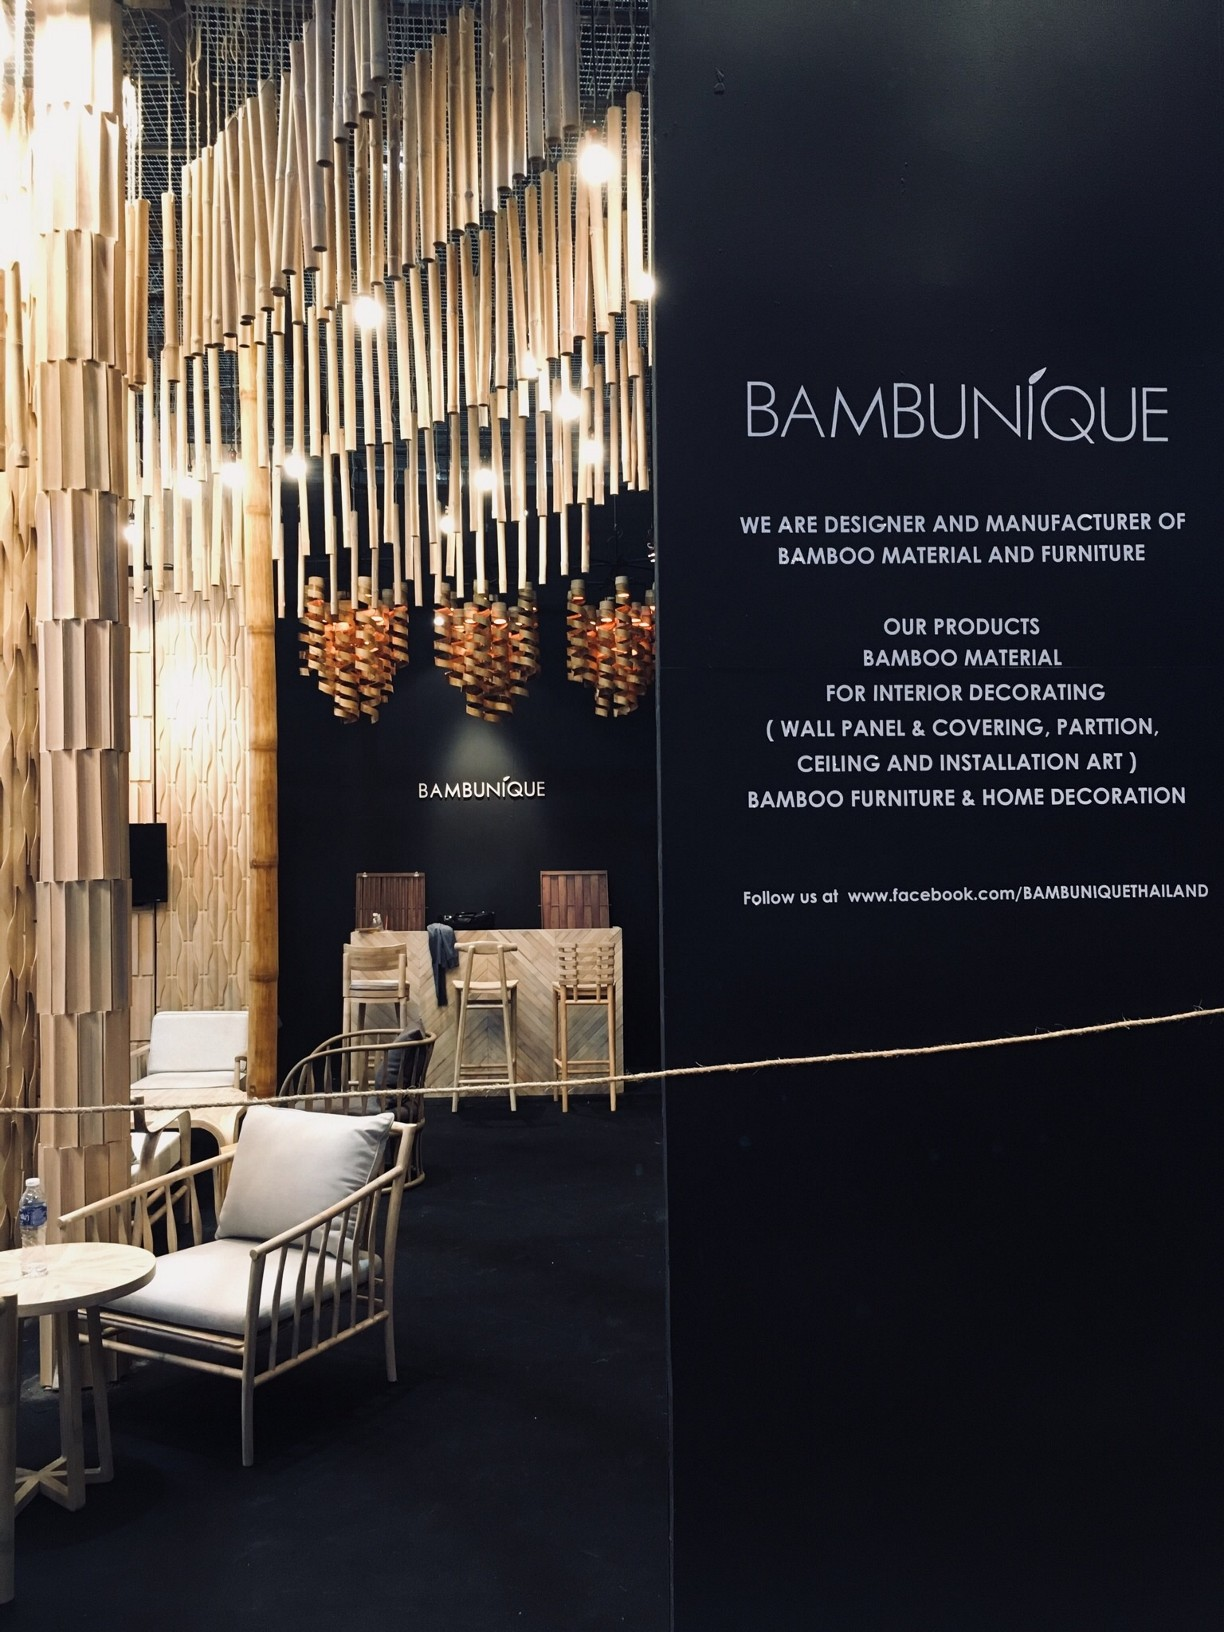 Bambunique - Architect Expo 2018 Bangkok